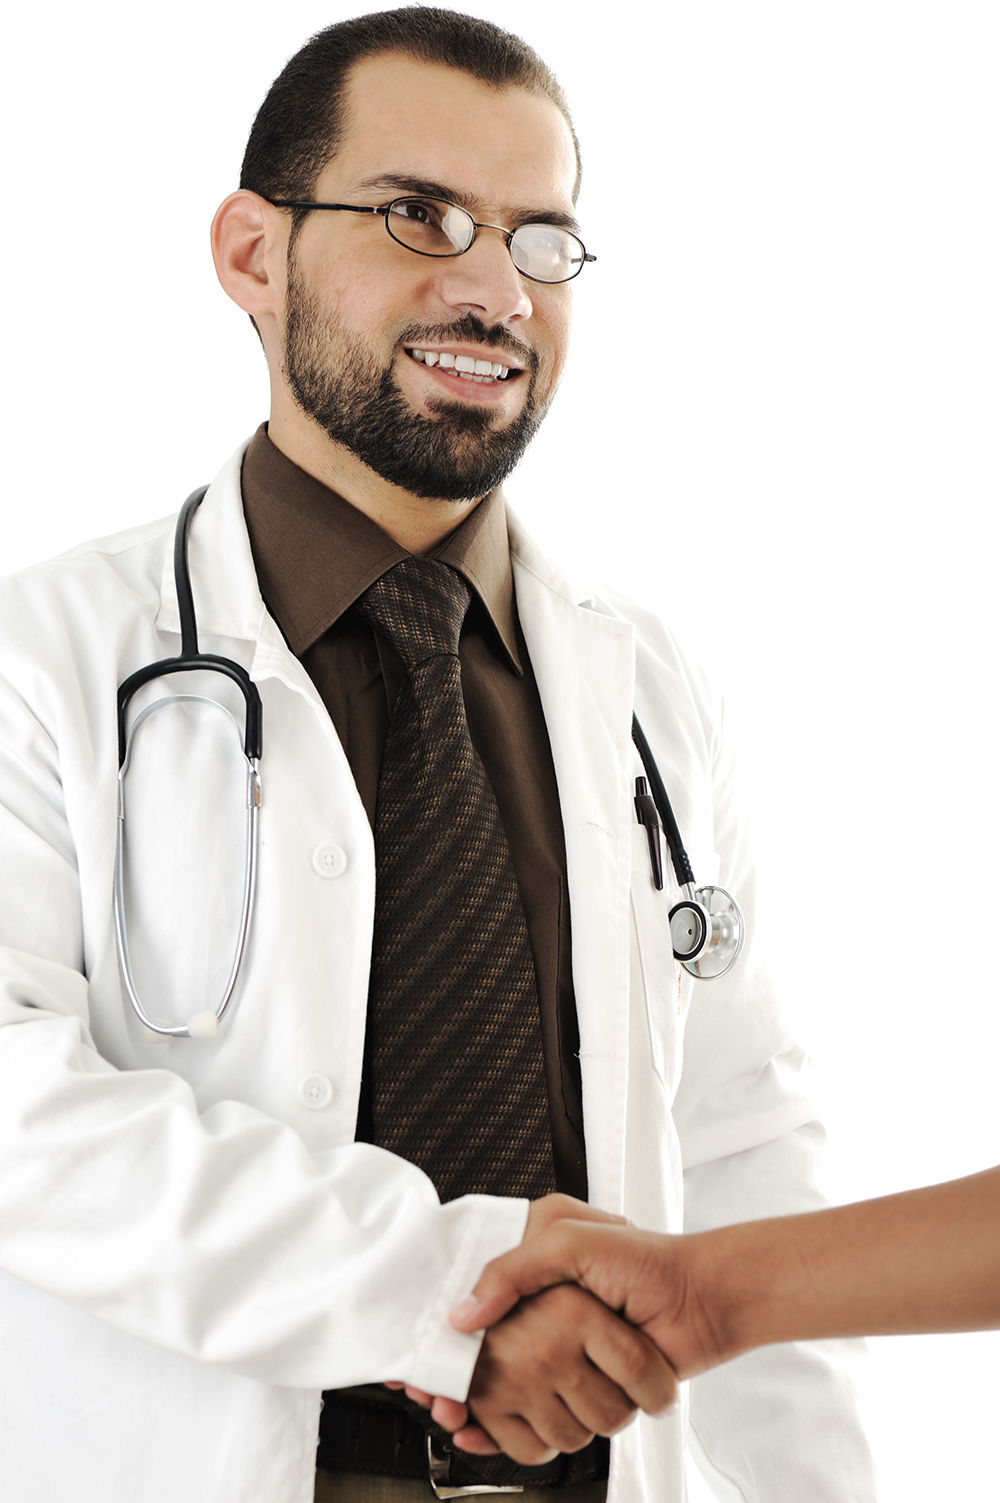 medical jobs in dubai medical jobs in abu dhabi medical jobs if you can t what you are looking for then please click here to register us so we can you a suitable job according to your preferences